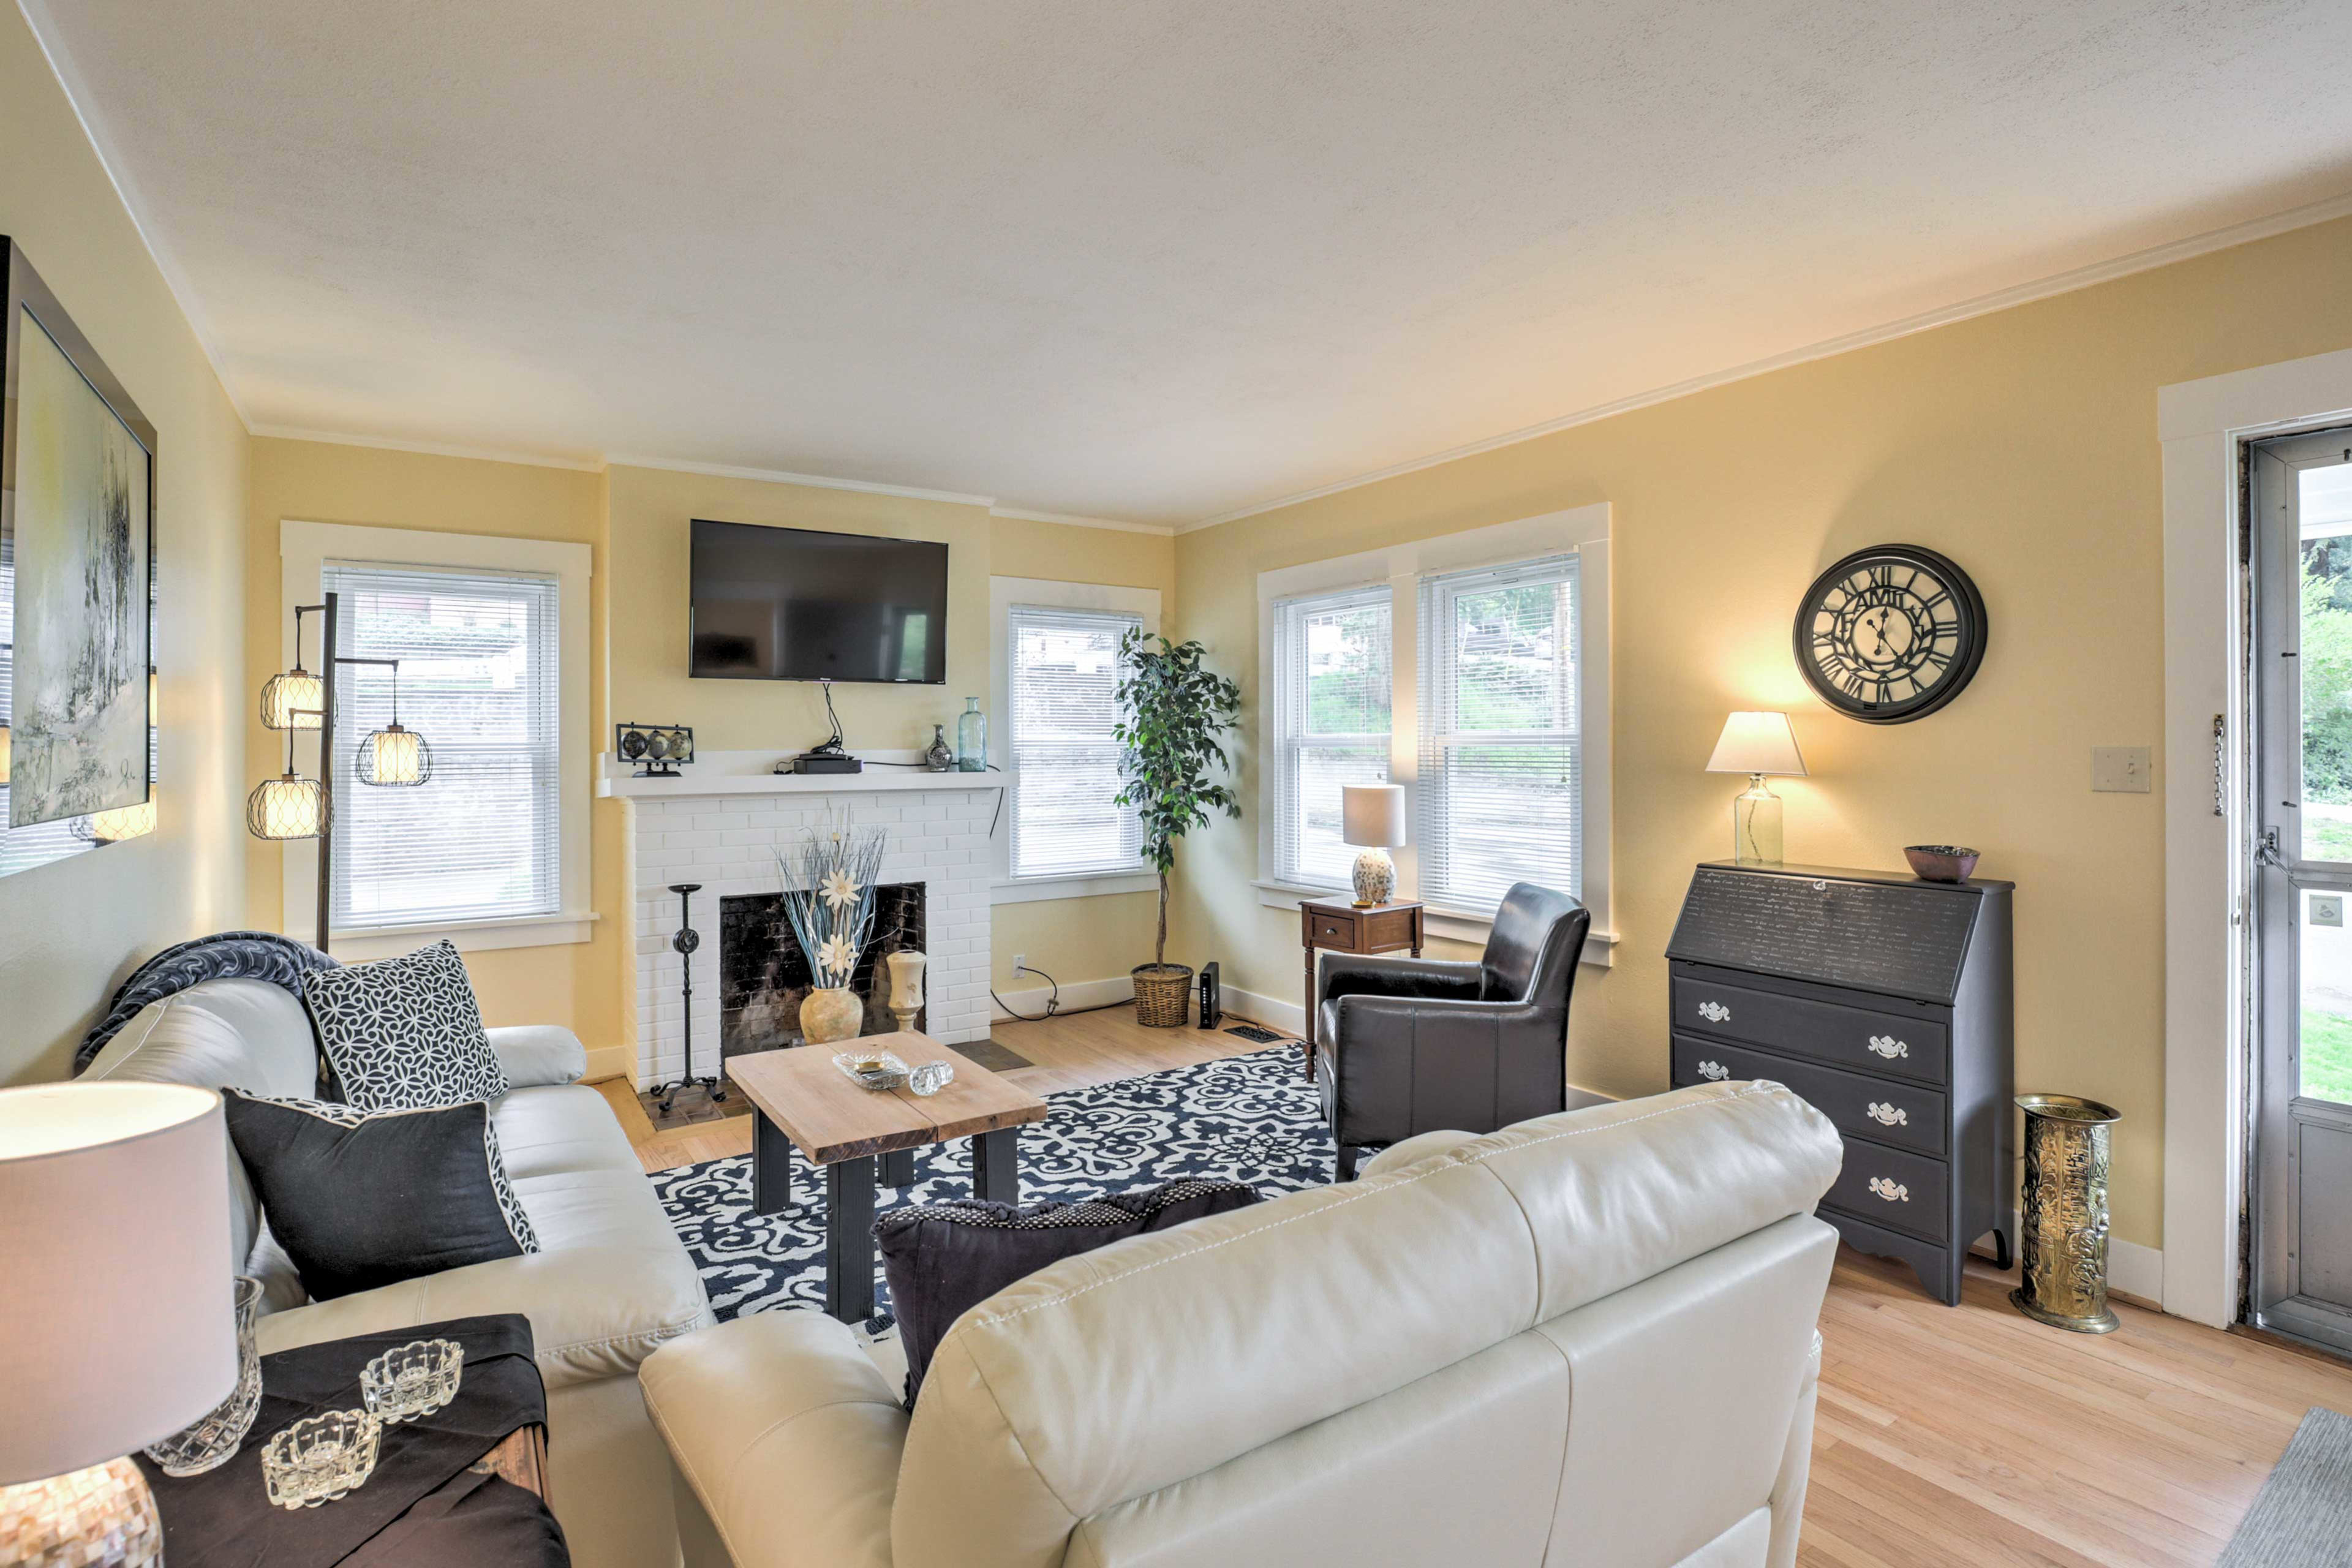 Newly remodeled, this home offers high-end decor and lots of natural light.